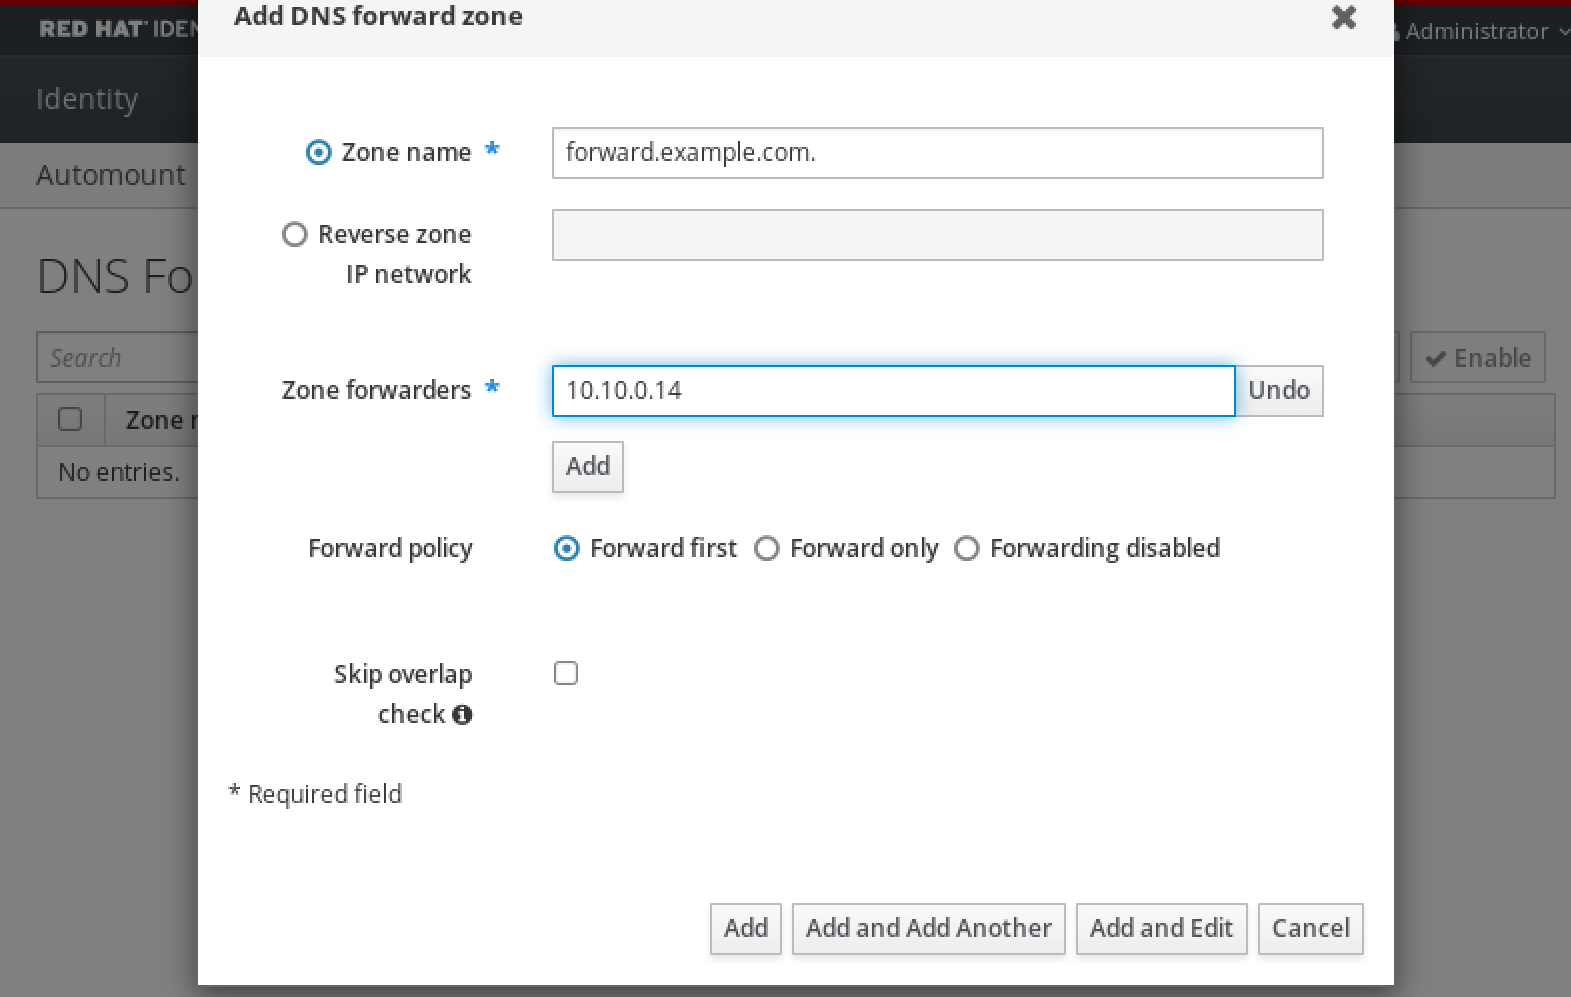 Specifying the IP address of the forwarder DNS server